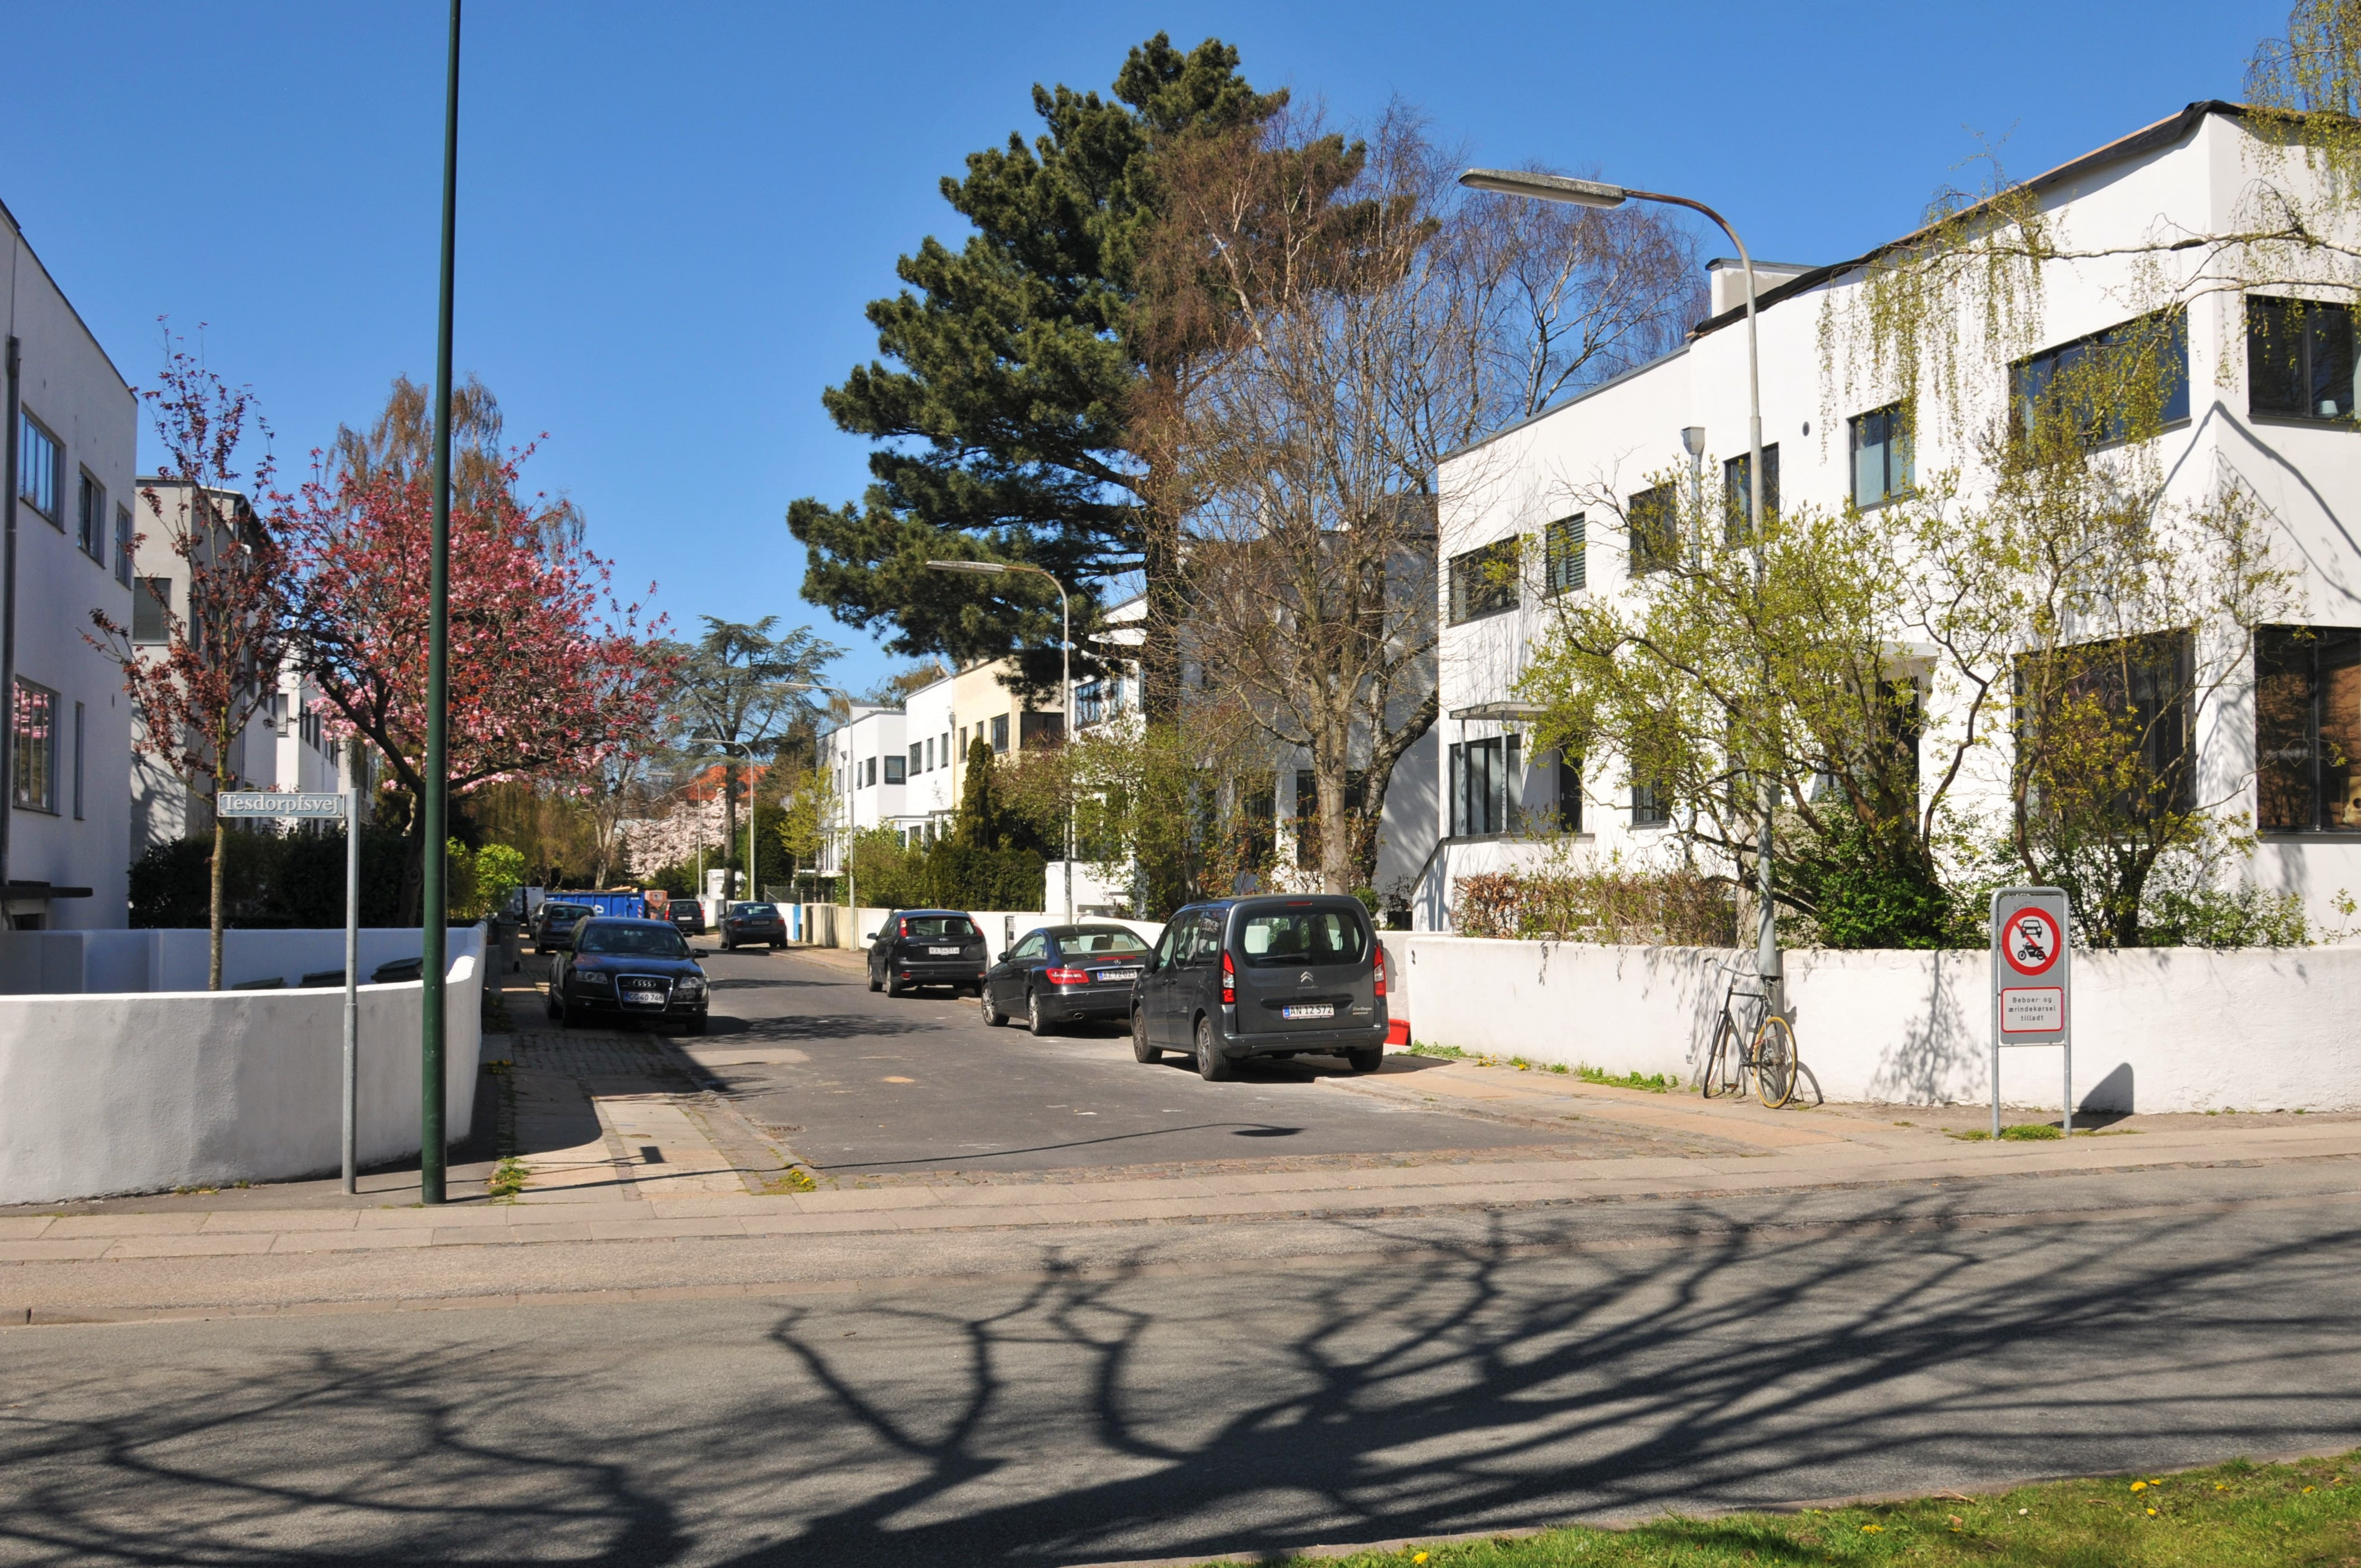 Modern buildings in Frederiksberg - Funkishusene (the functional houses) on Emanuel Olsens Vej